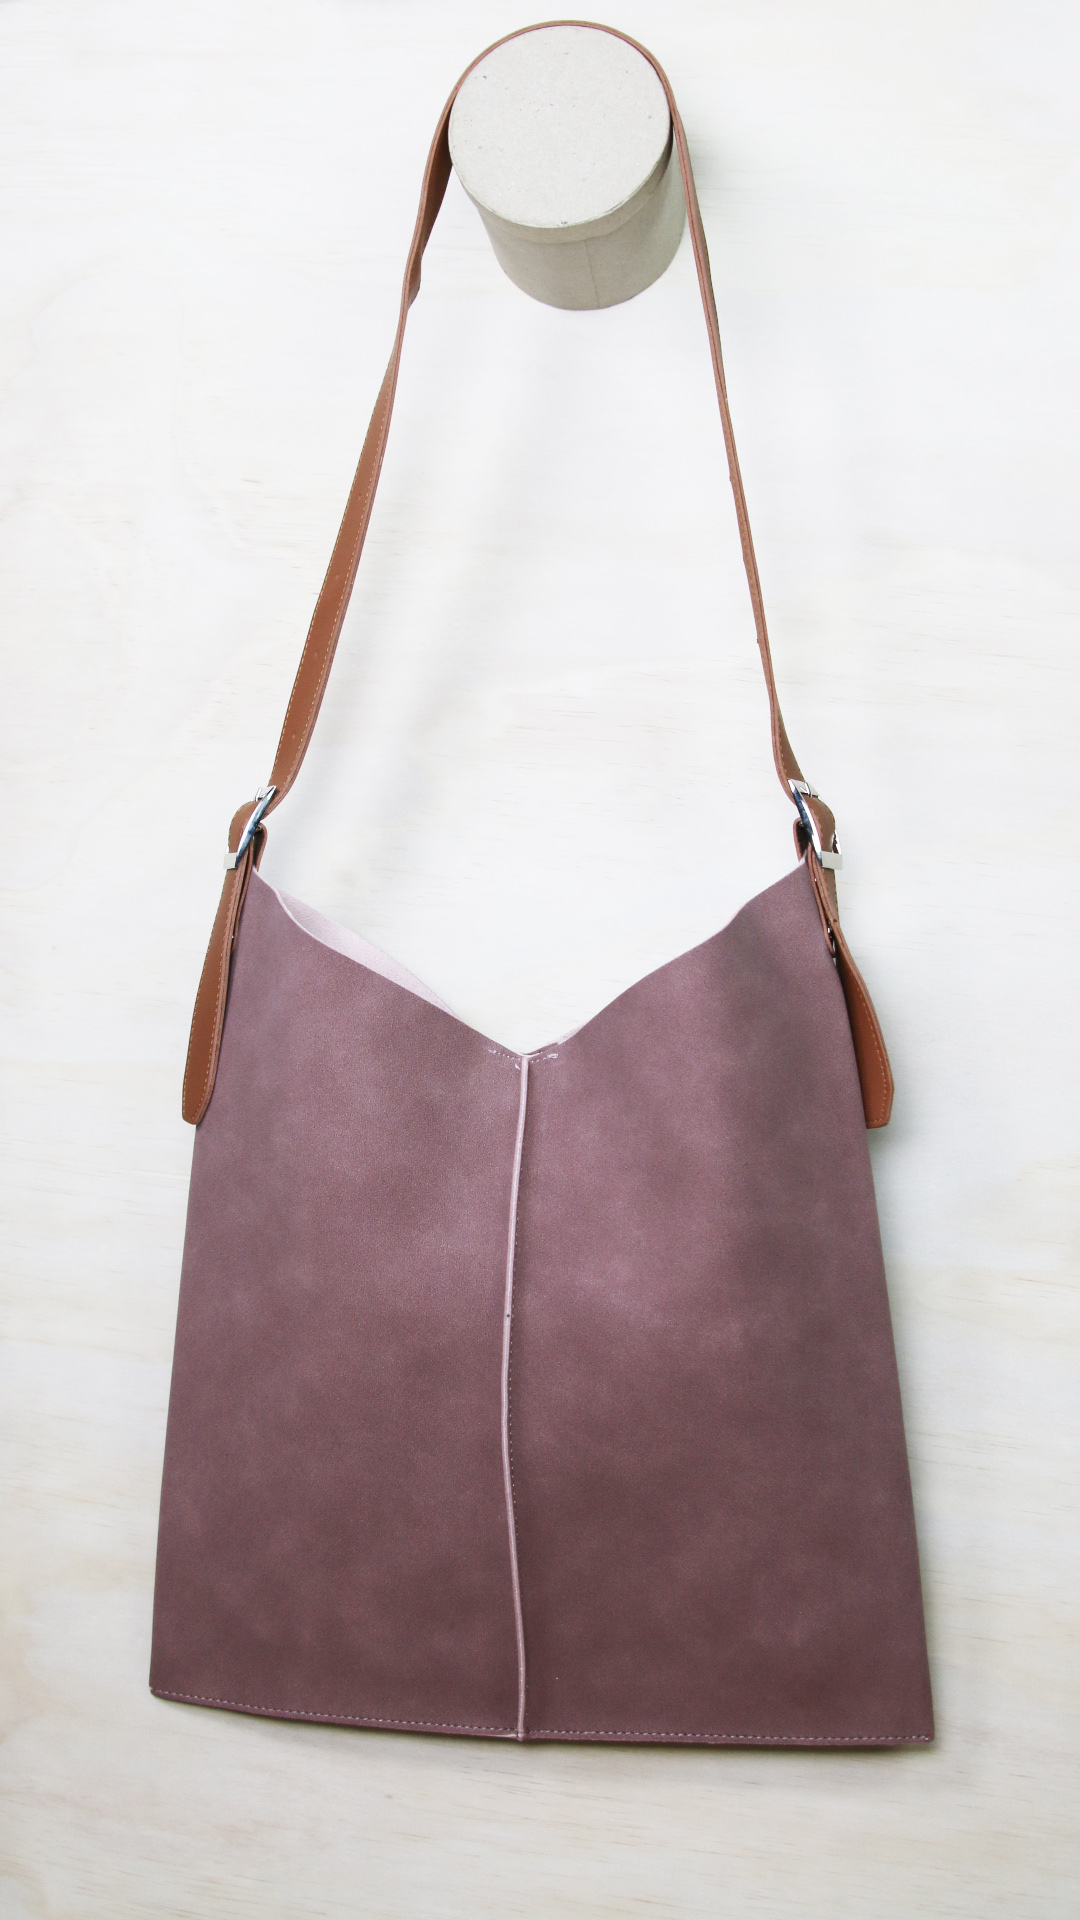 Ana vegan suede crossbody with a tan sling - blush